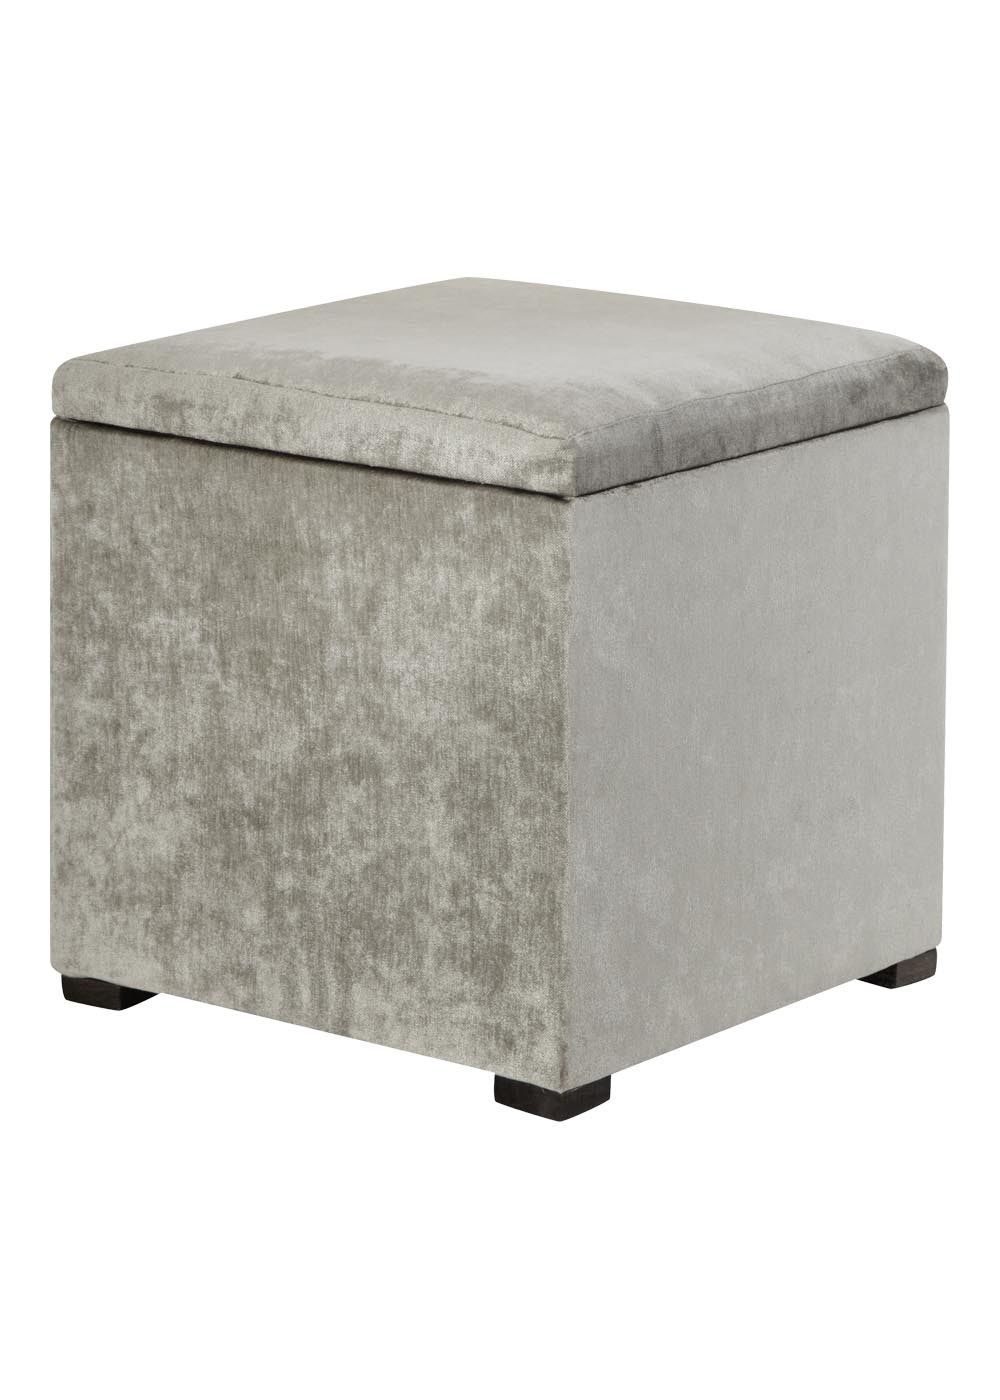 Exceptionnel Storage Footstool 40cm X 38cm   Matalan. £25. Mink Grey Dressing Table/vanity  Stool.